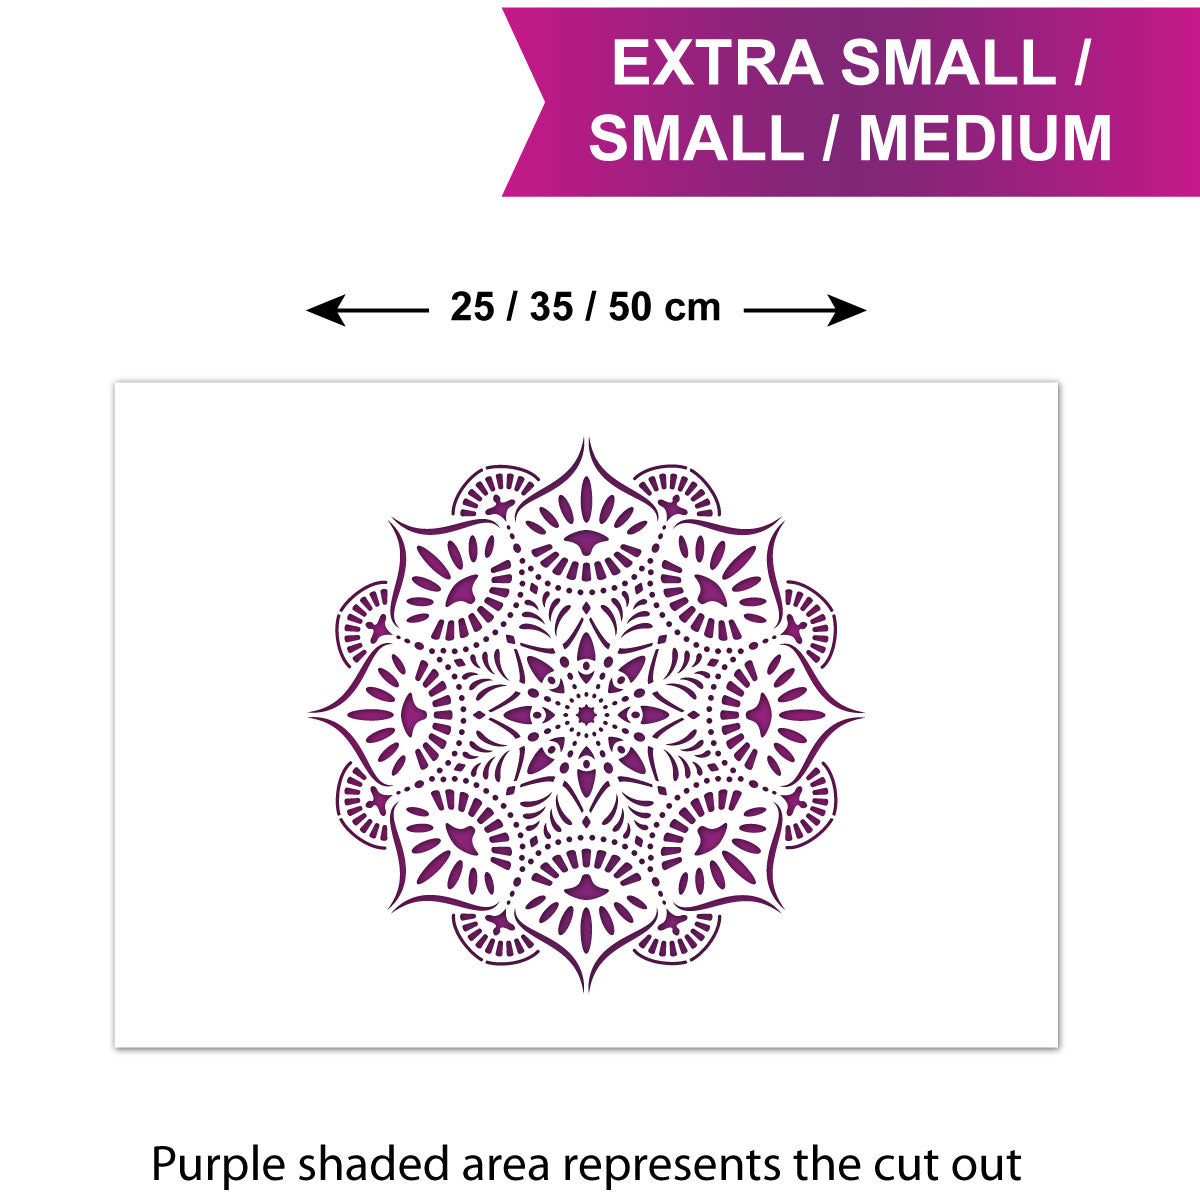 CraftStar Reflections Mandala Stencil - Sizes - XS/S/M